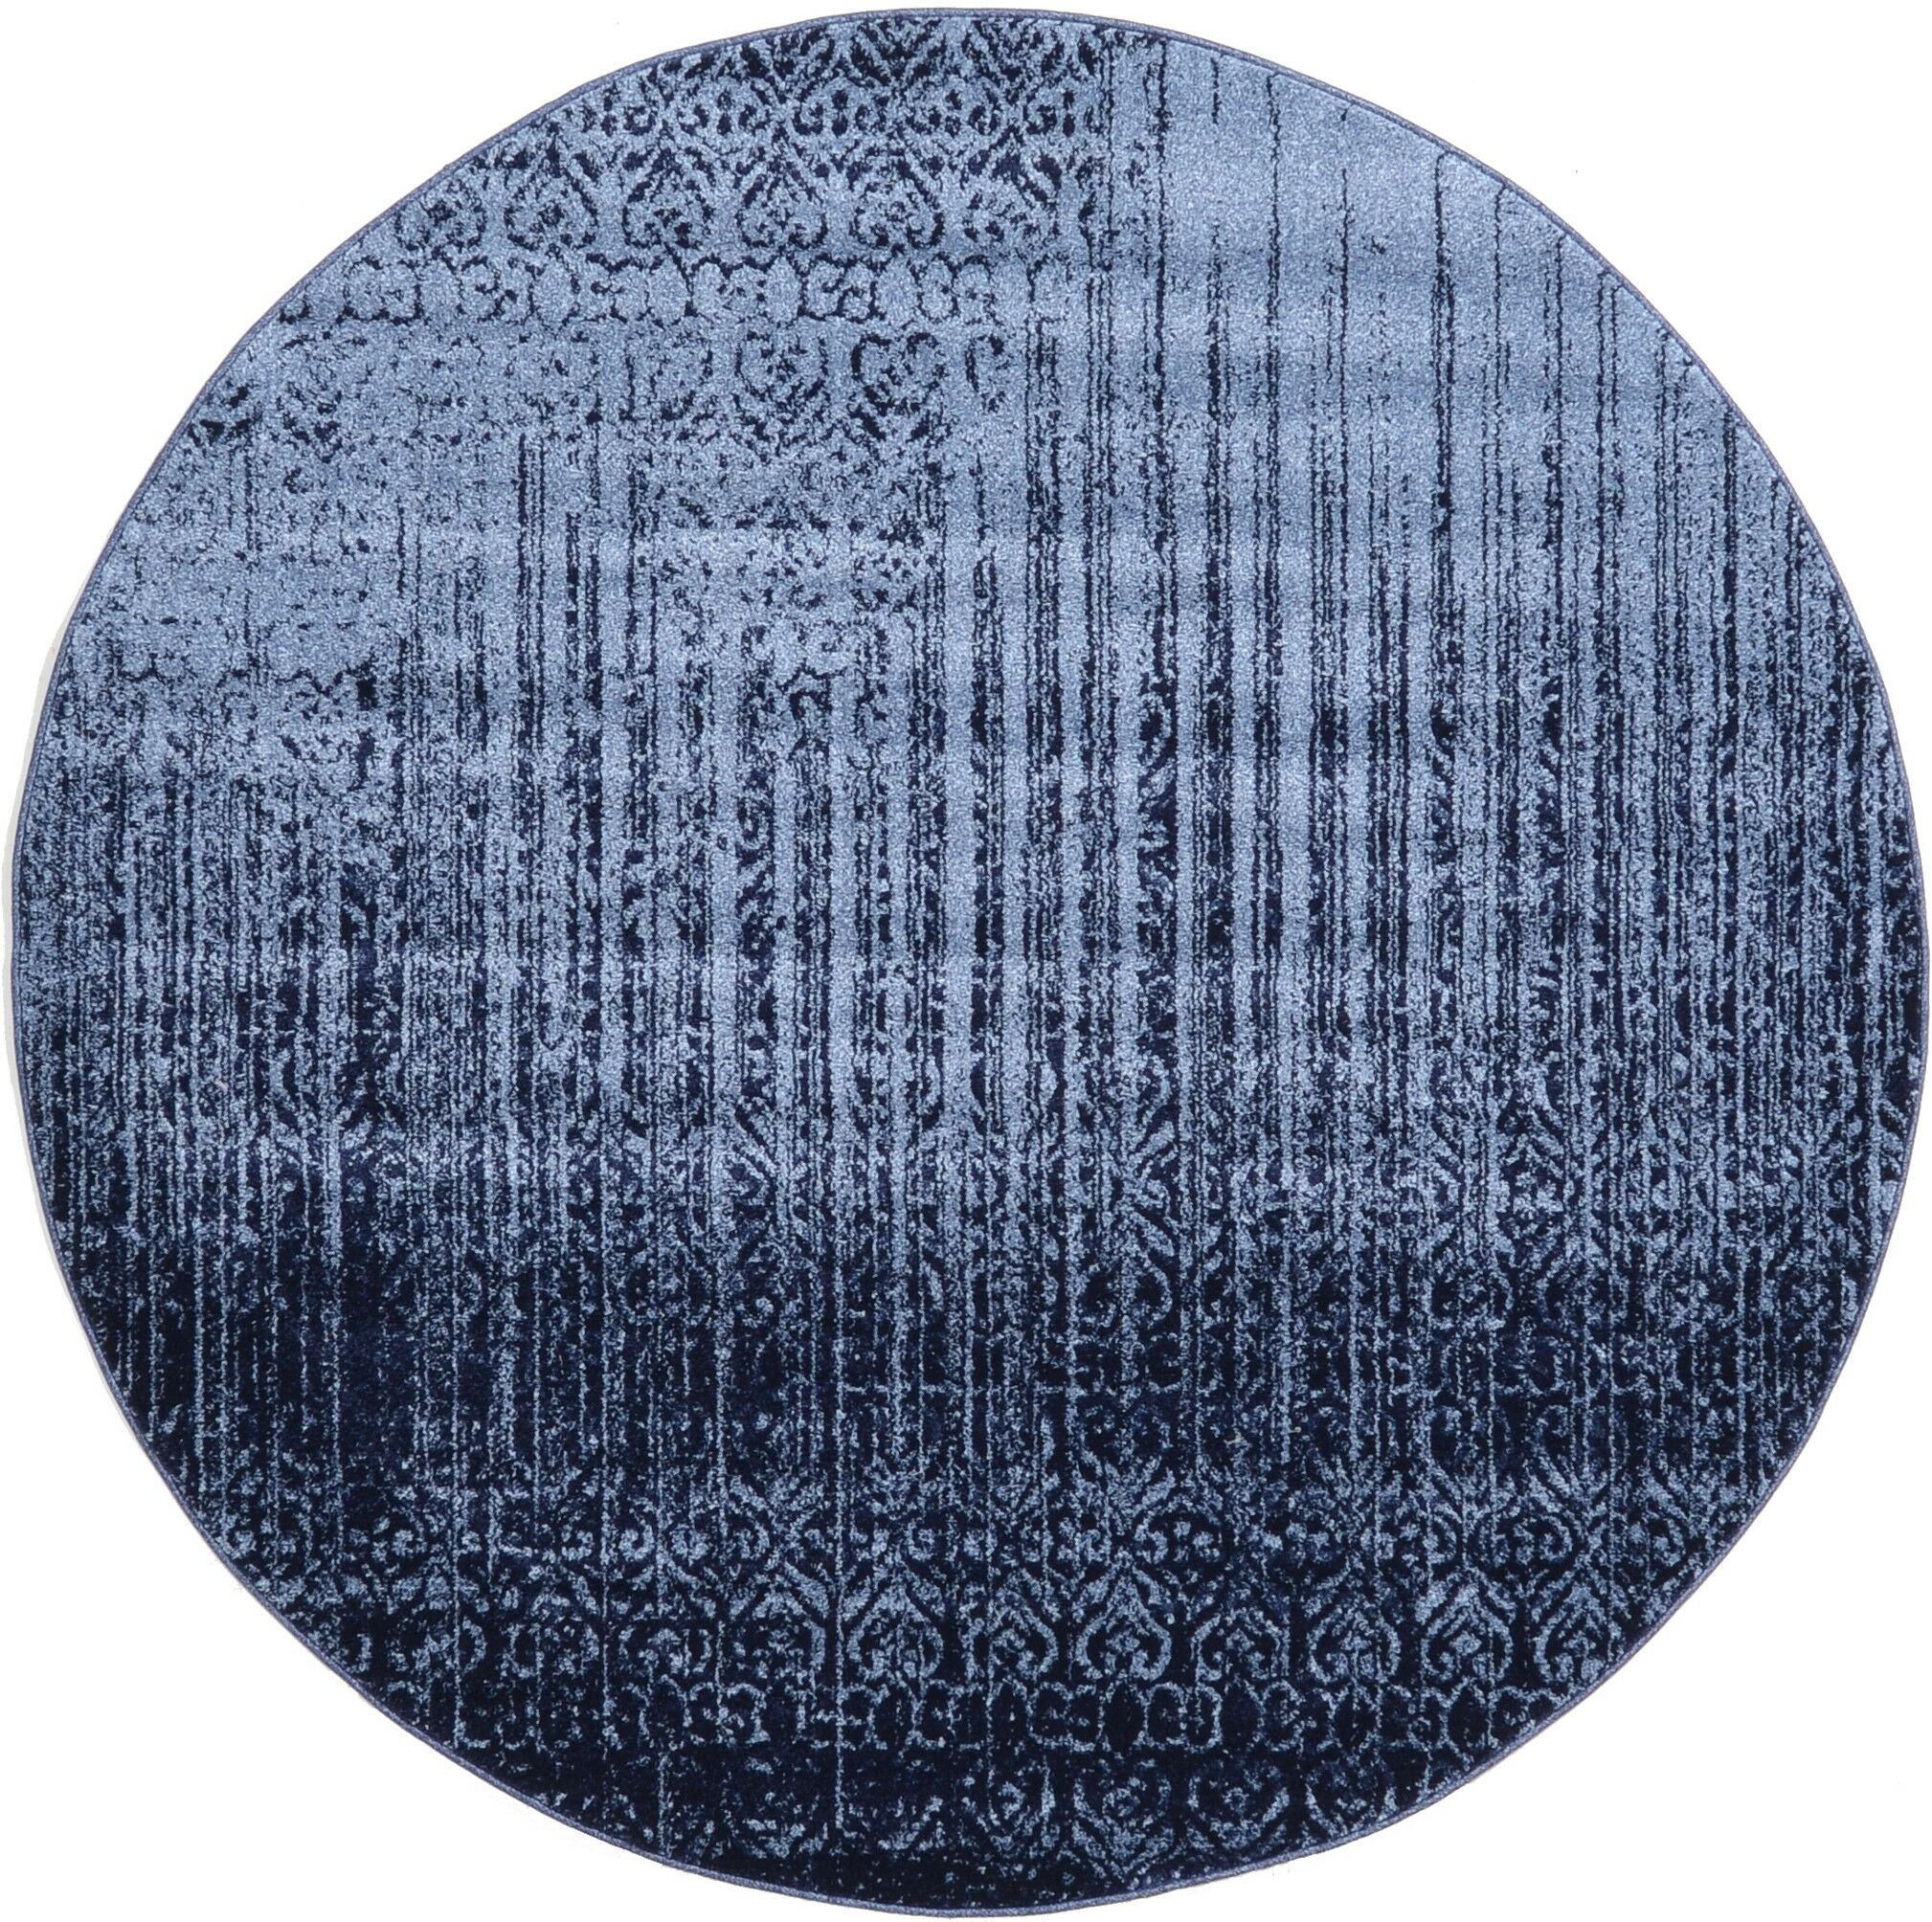 Dungan Blue Area Rug Rug Size: Round 6.1'